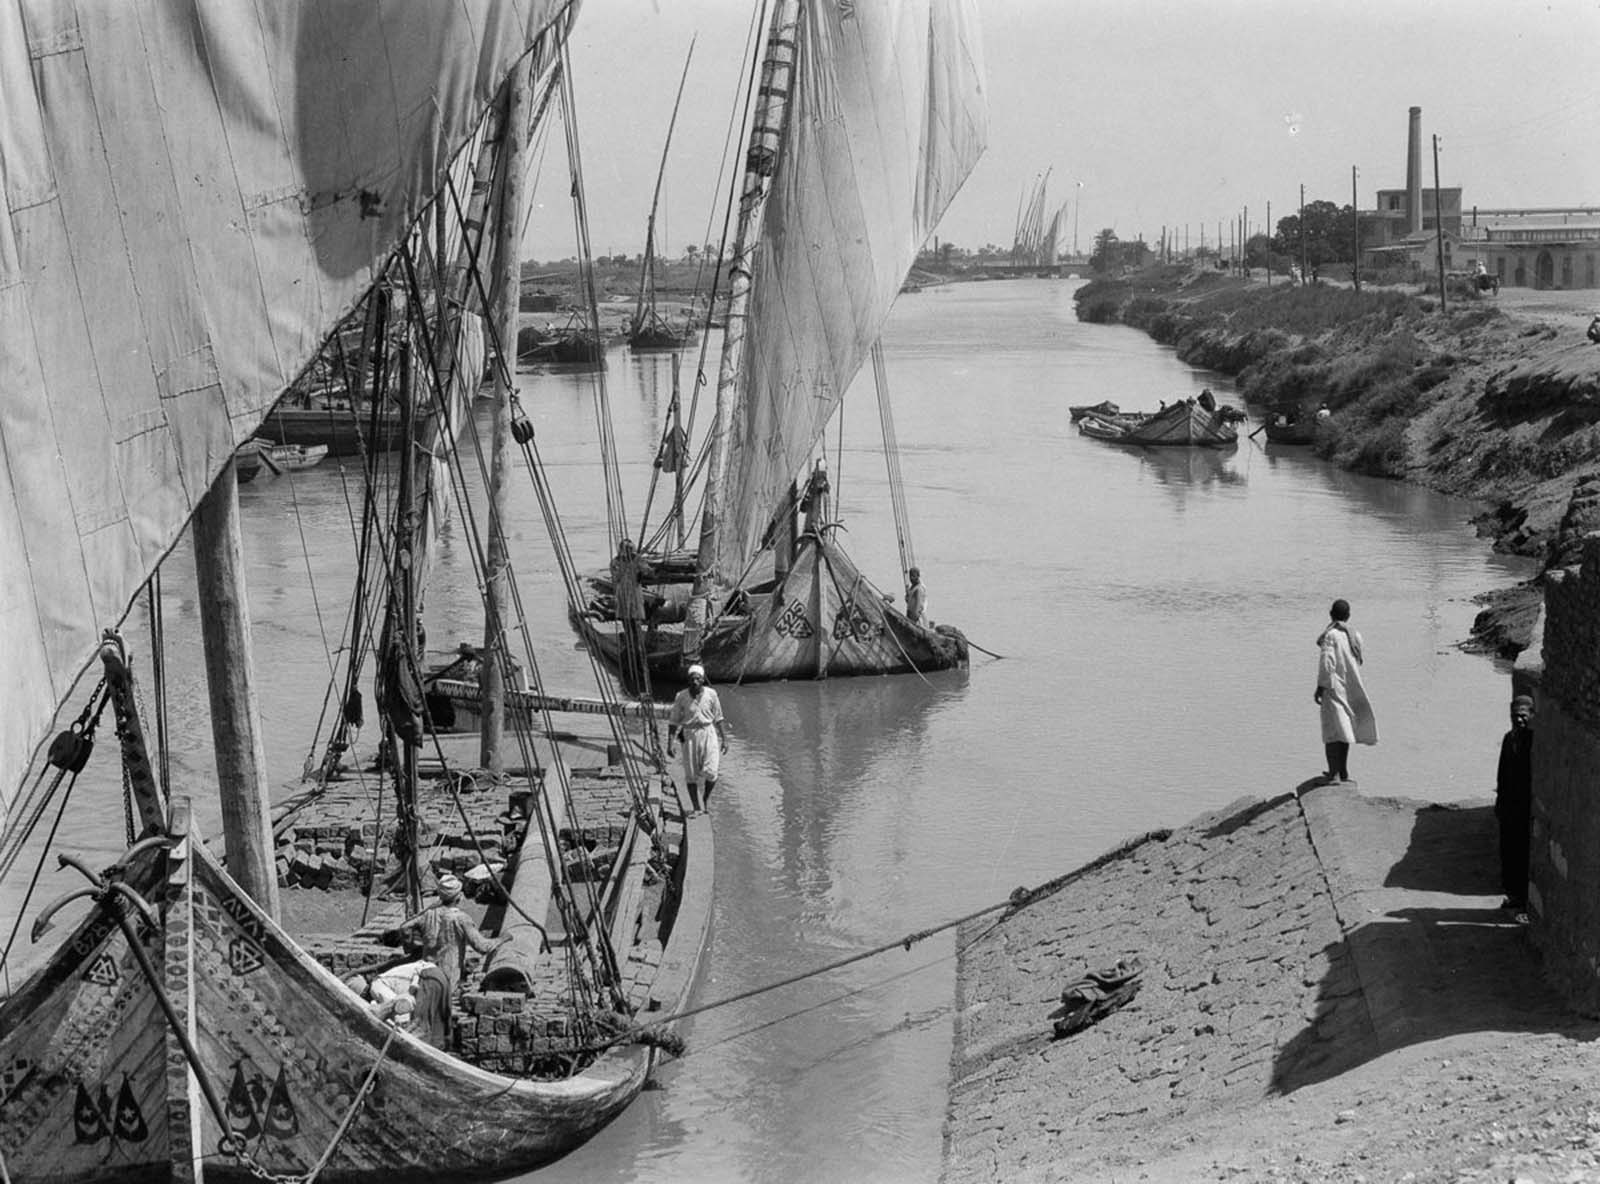 Boats dock in a canal off the Nile. 1934.